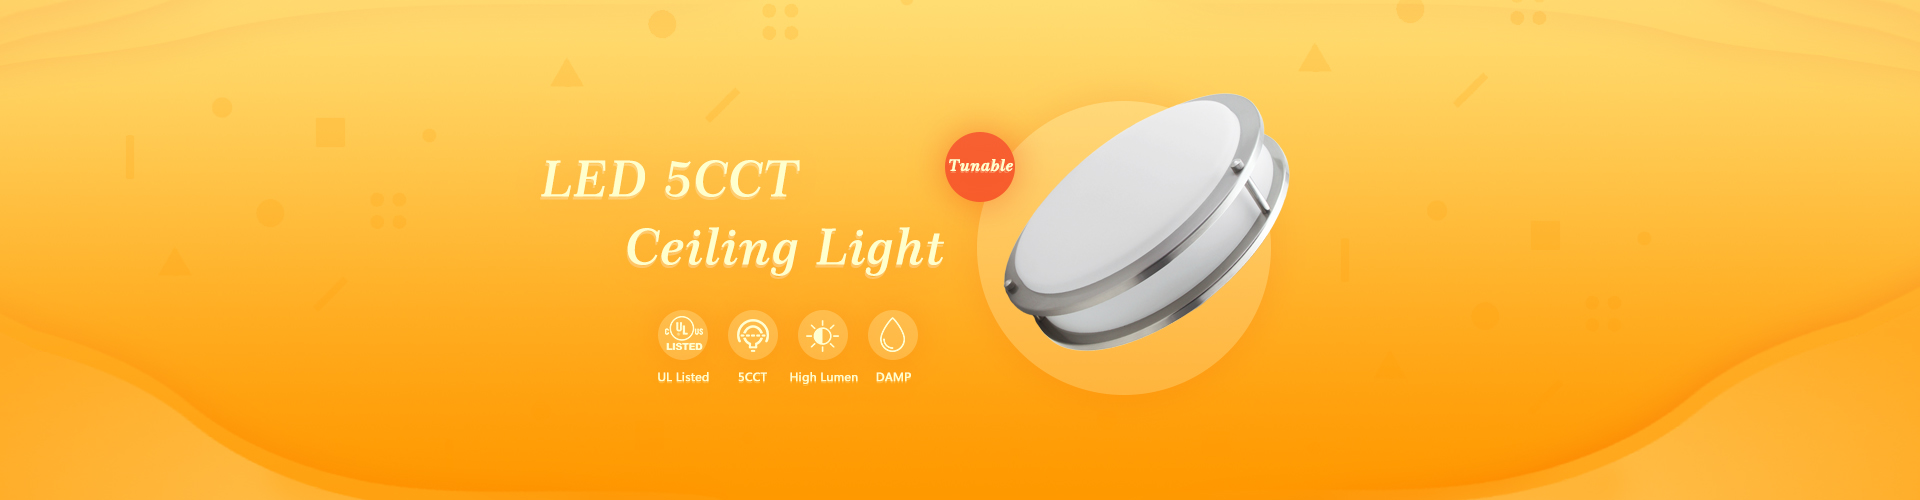 5CCT Led Flush Mount Light